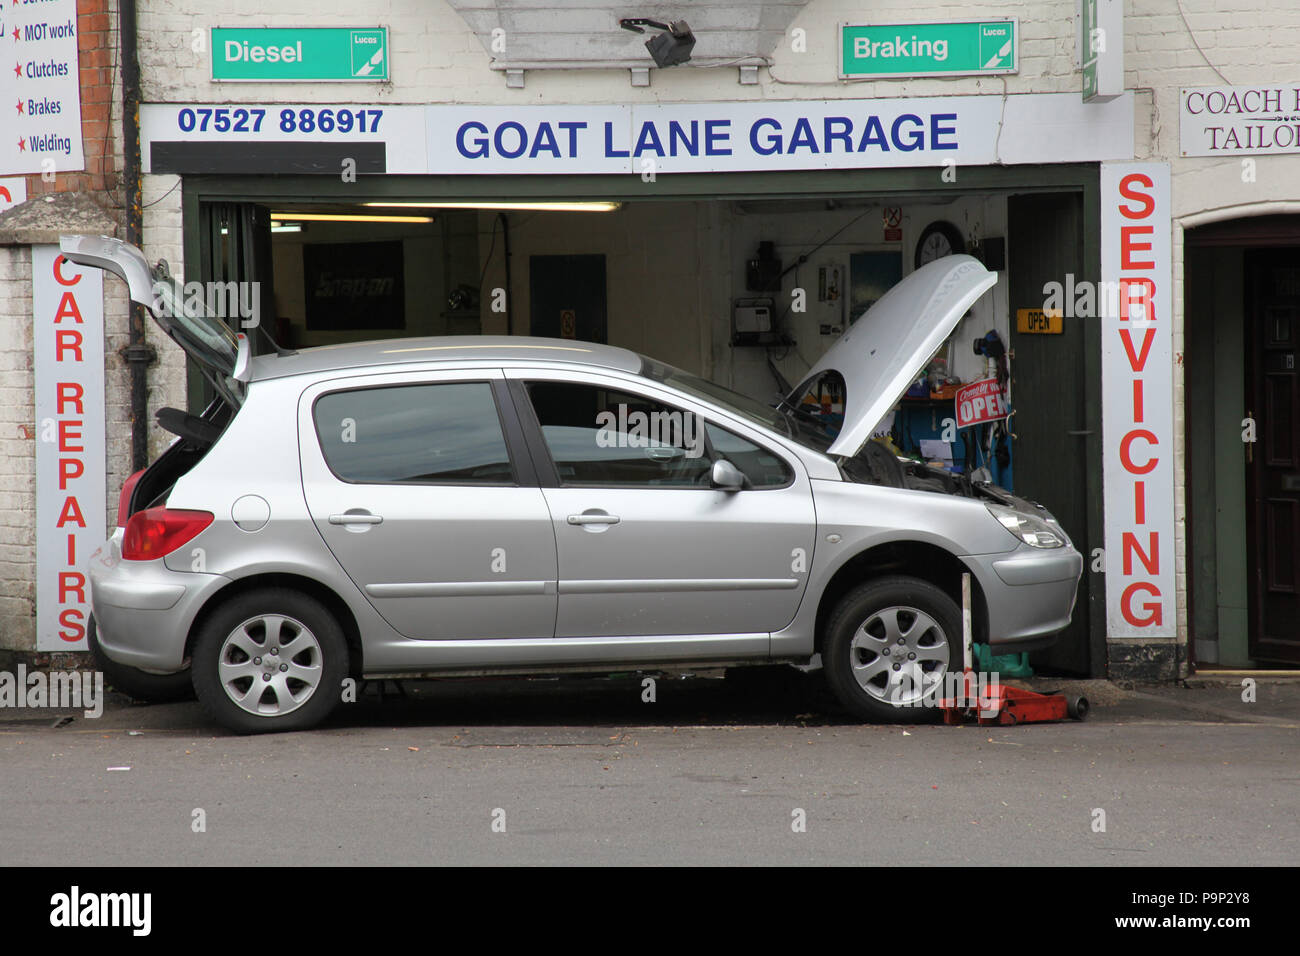 A car being fixed at a small garage at Goat Lane, Basingstoke. - Stock Image